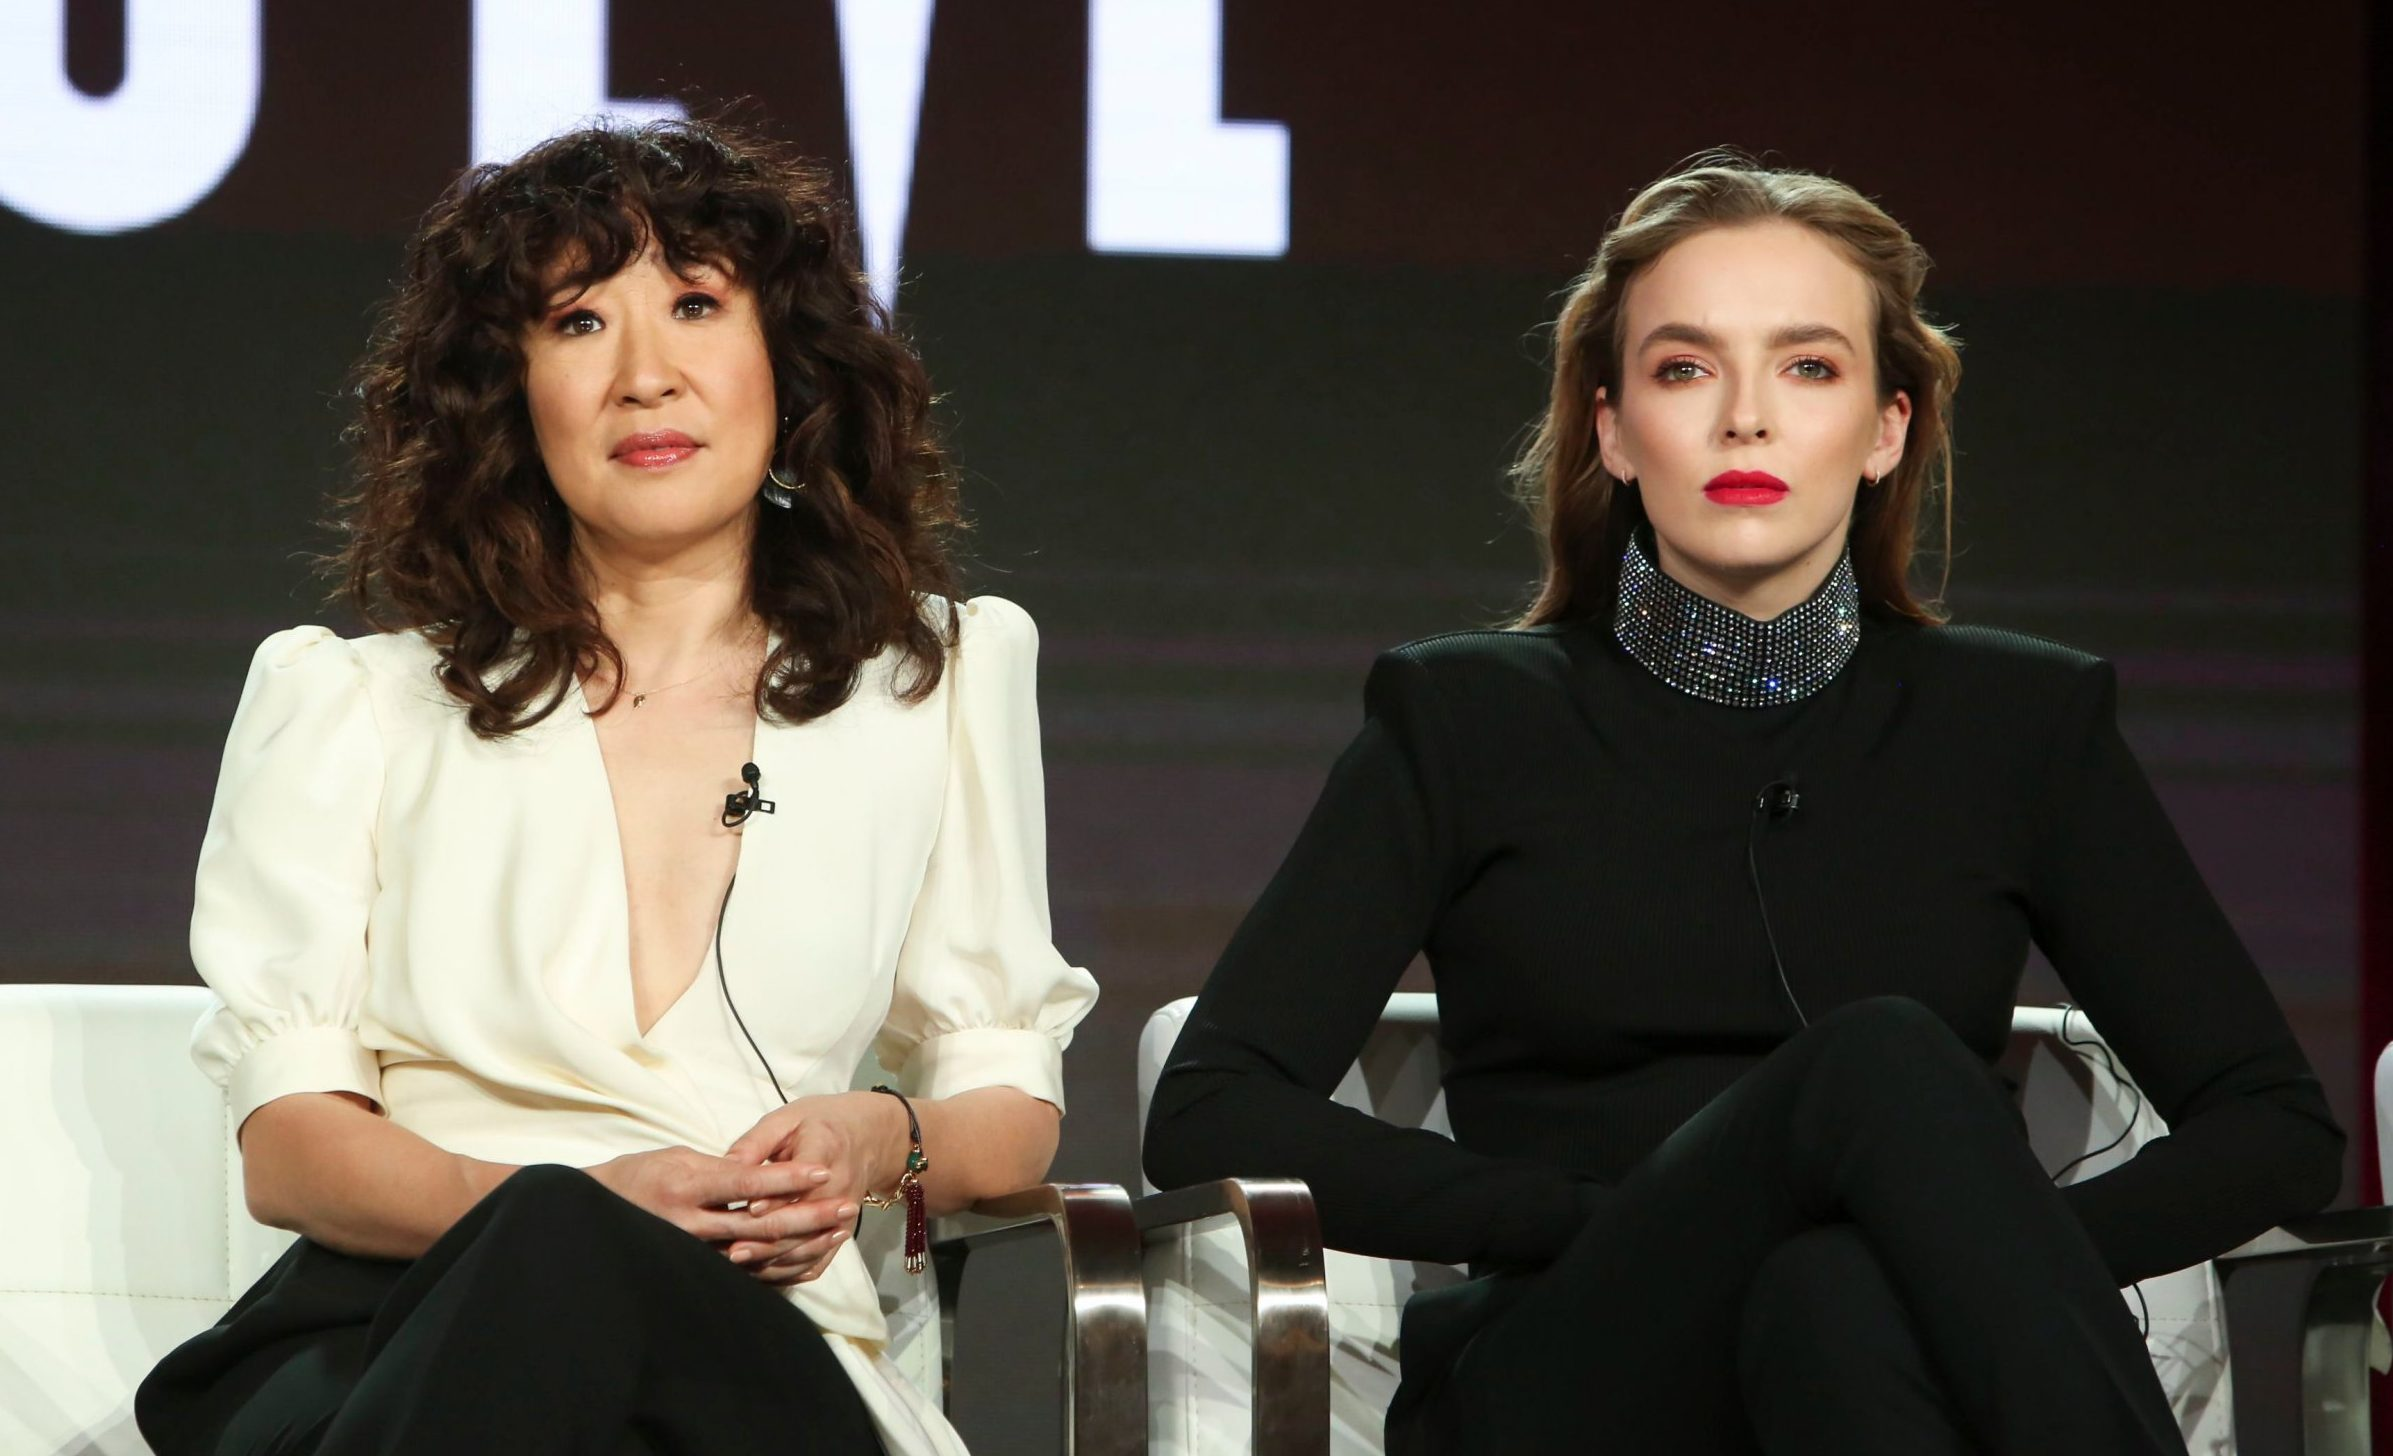 Killing Eve season 2 could take months to finally be released in the UK